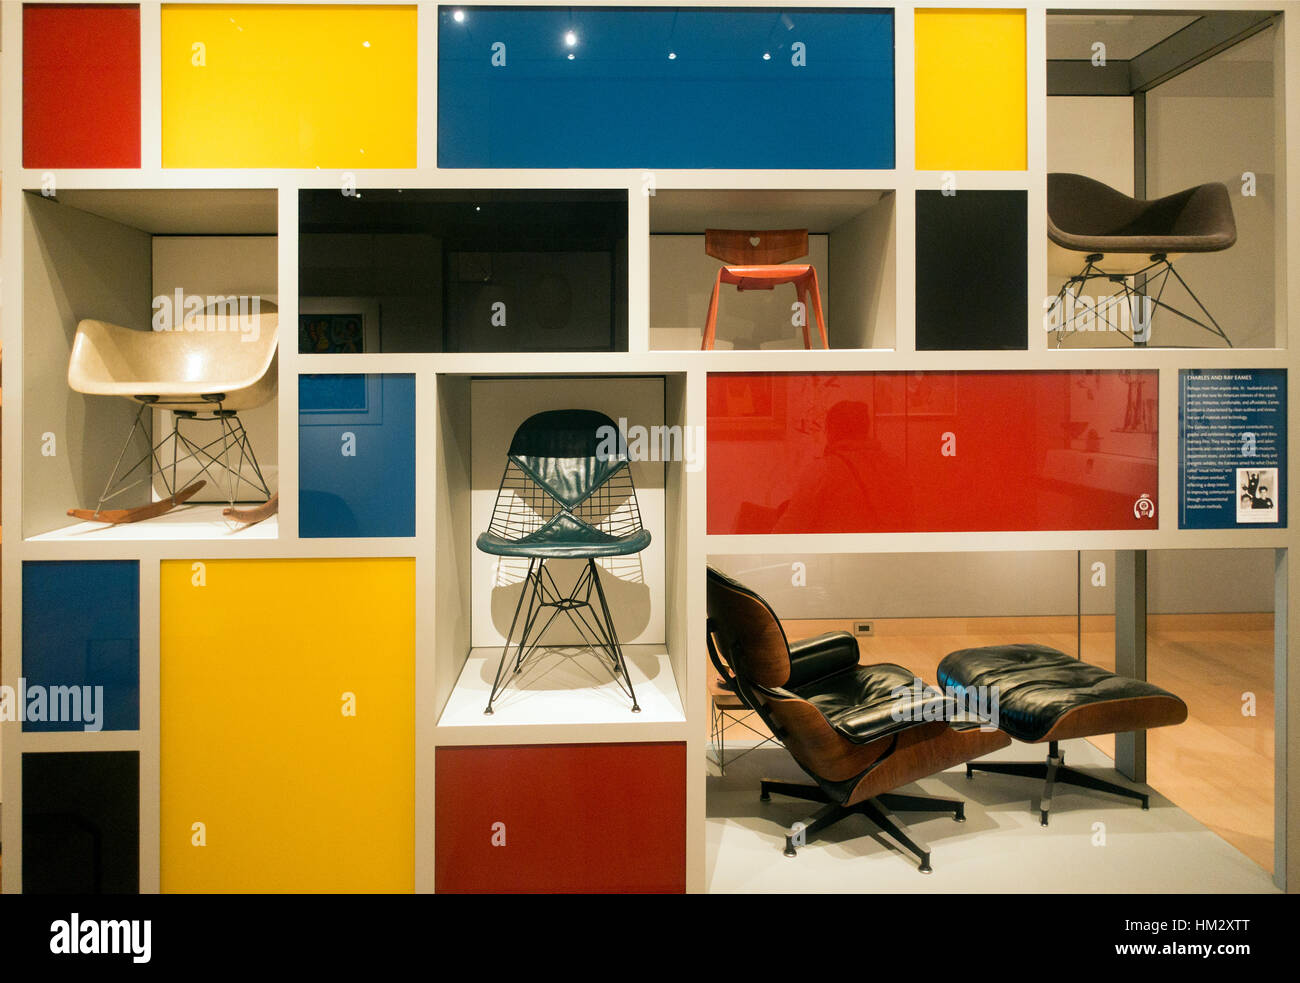 Eames Chairs Stock Photos Amp Eames Chairs Stock Images Alamy